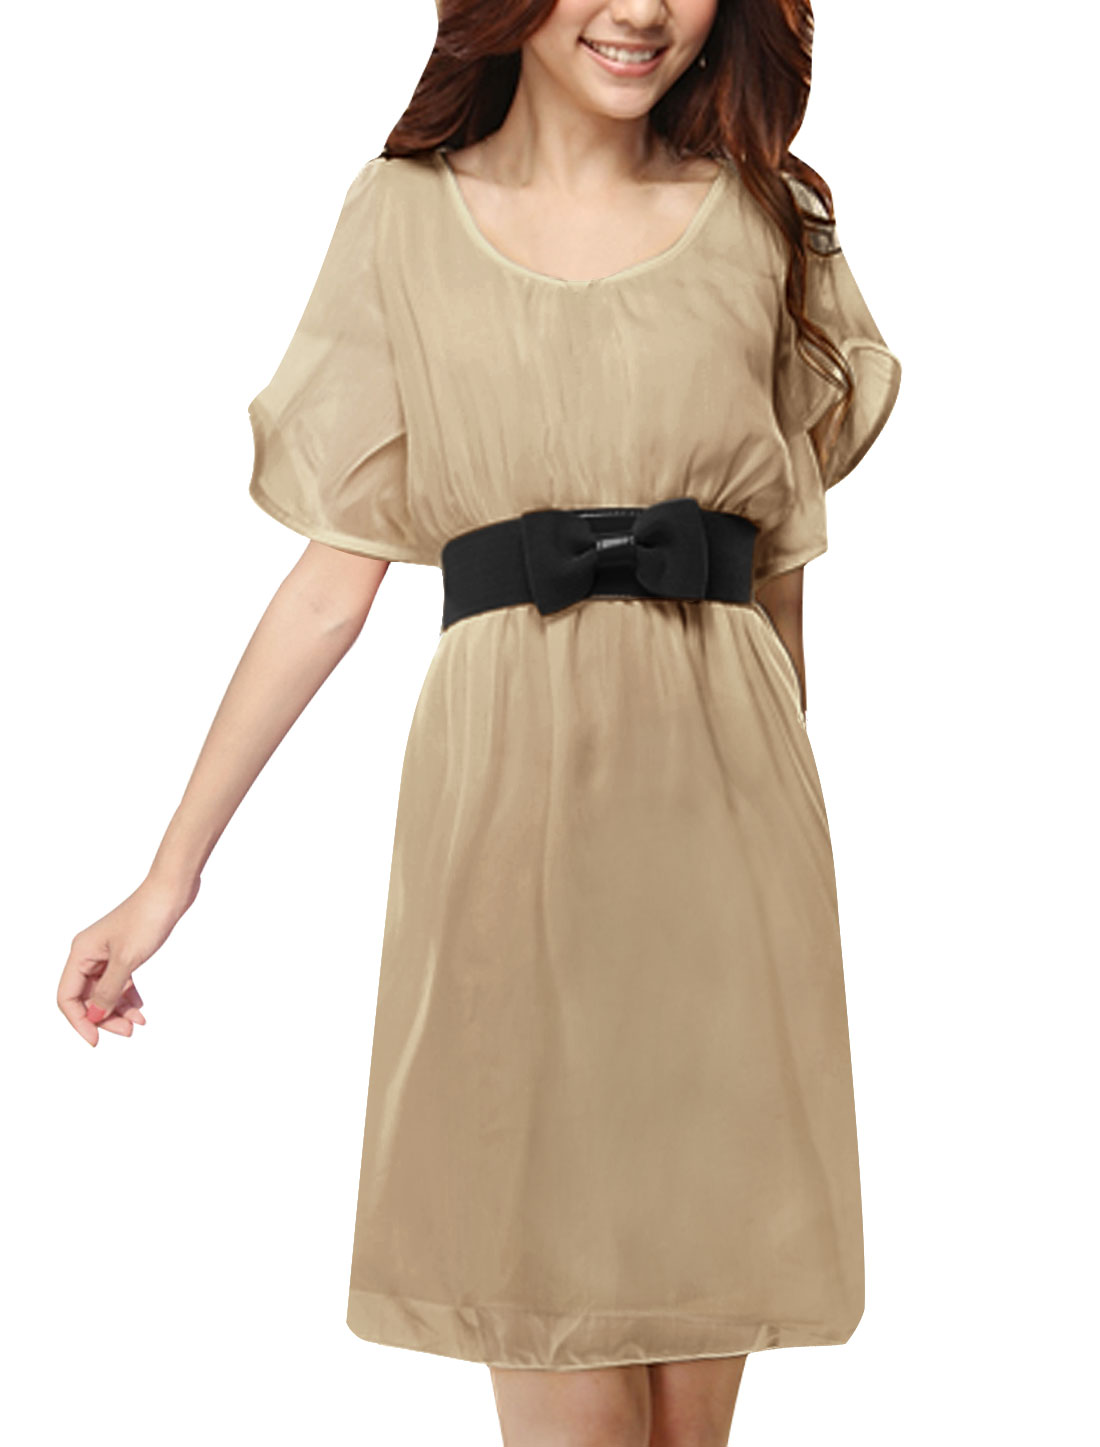 Women Beige Scoop Neck Elastic Waist Above Knee Dress S w Belt